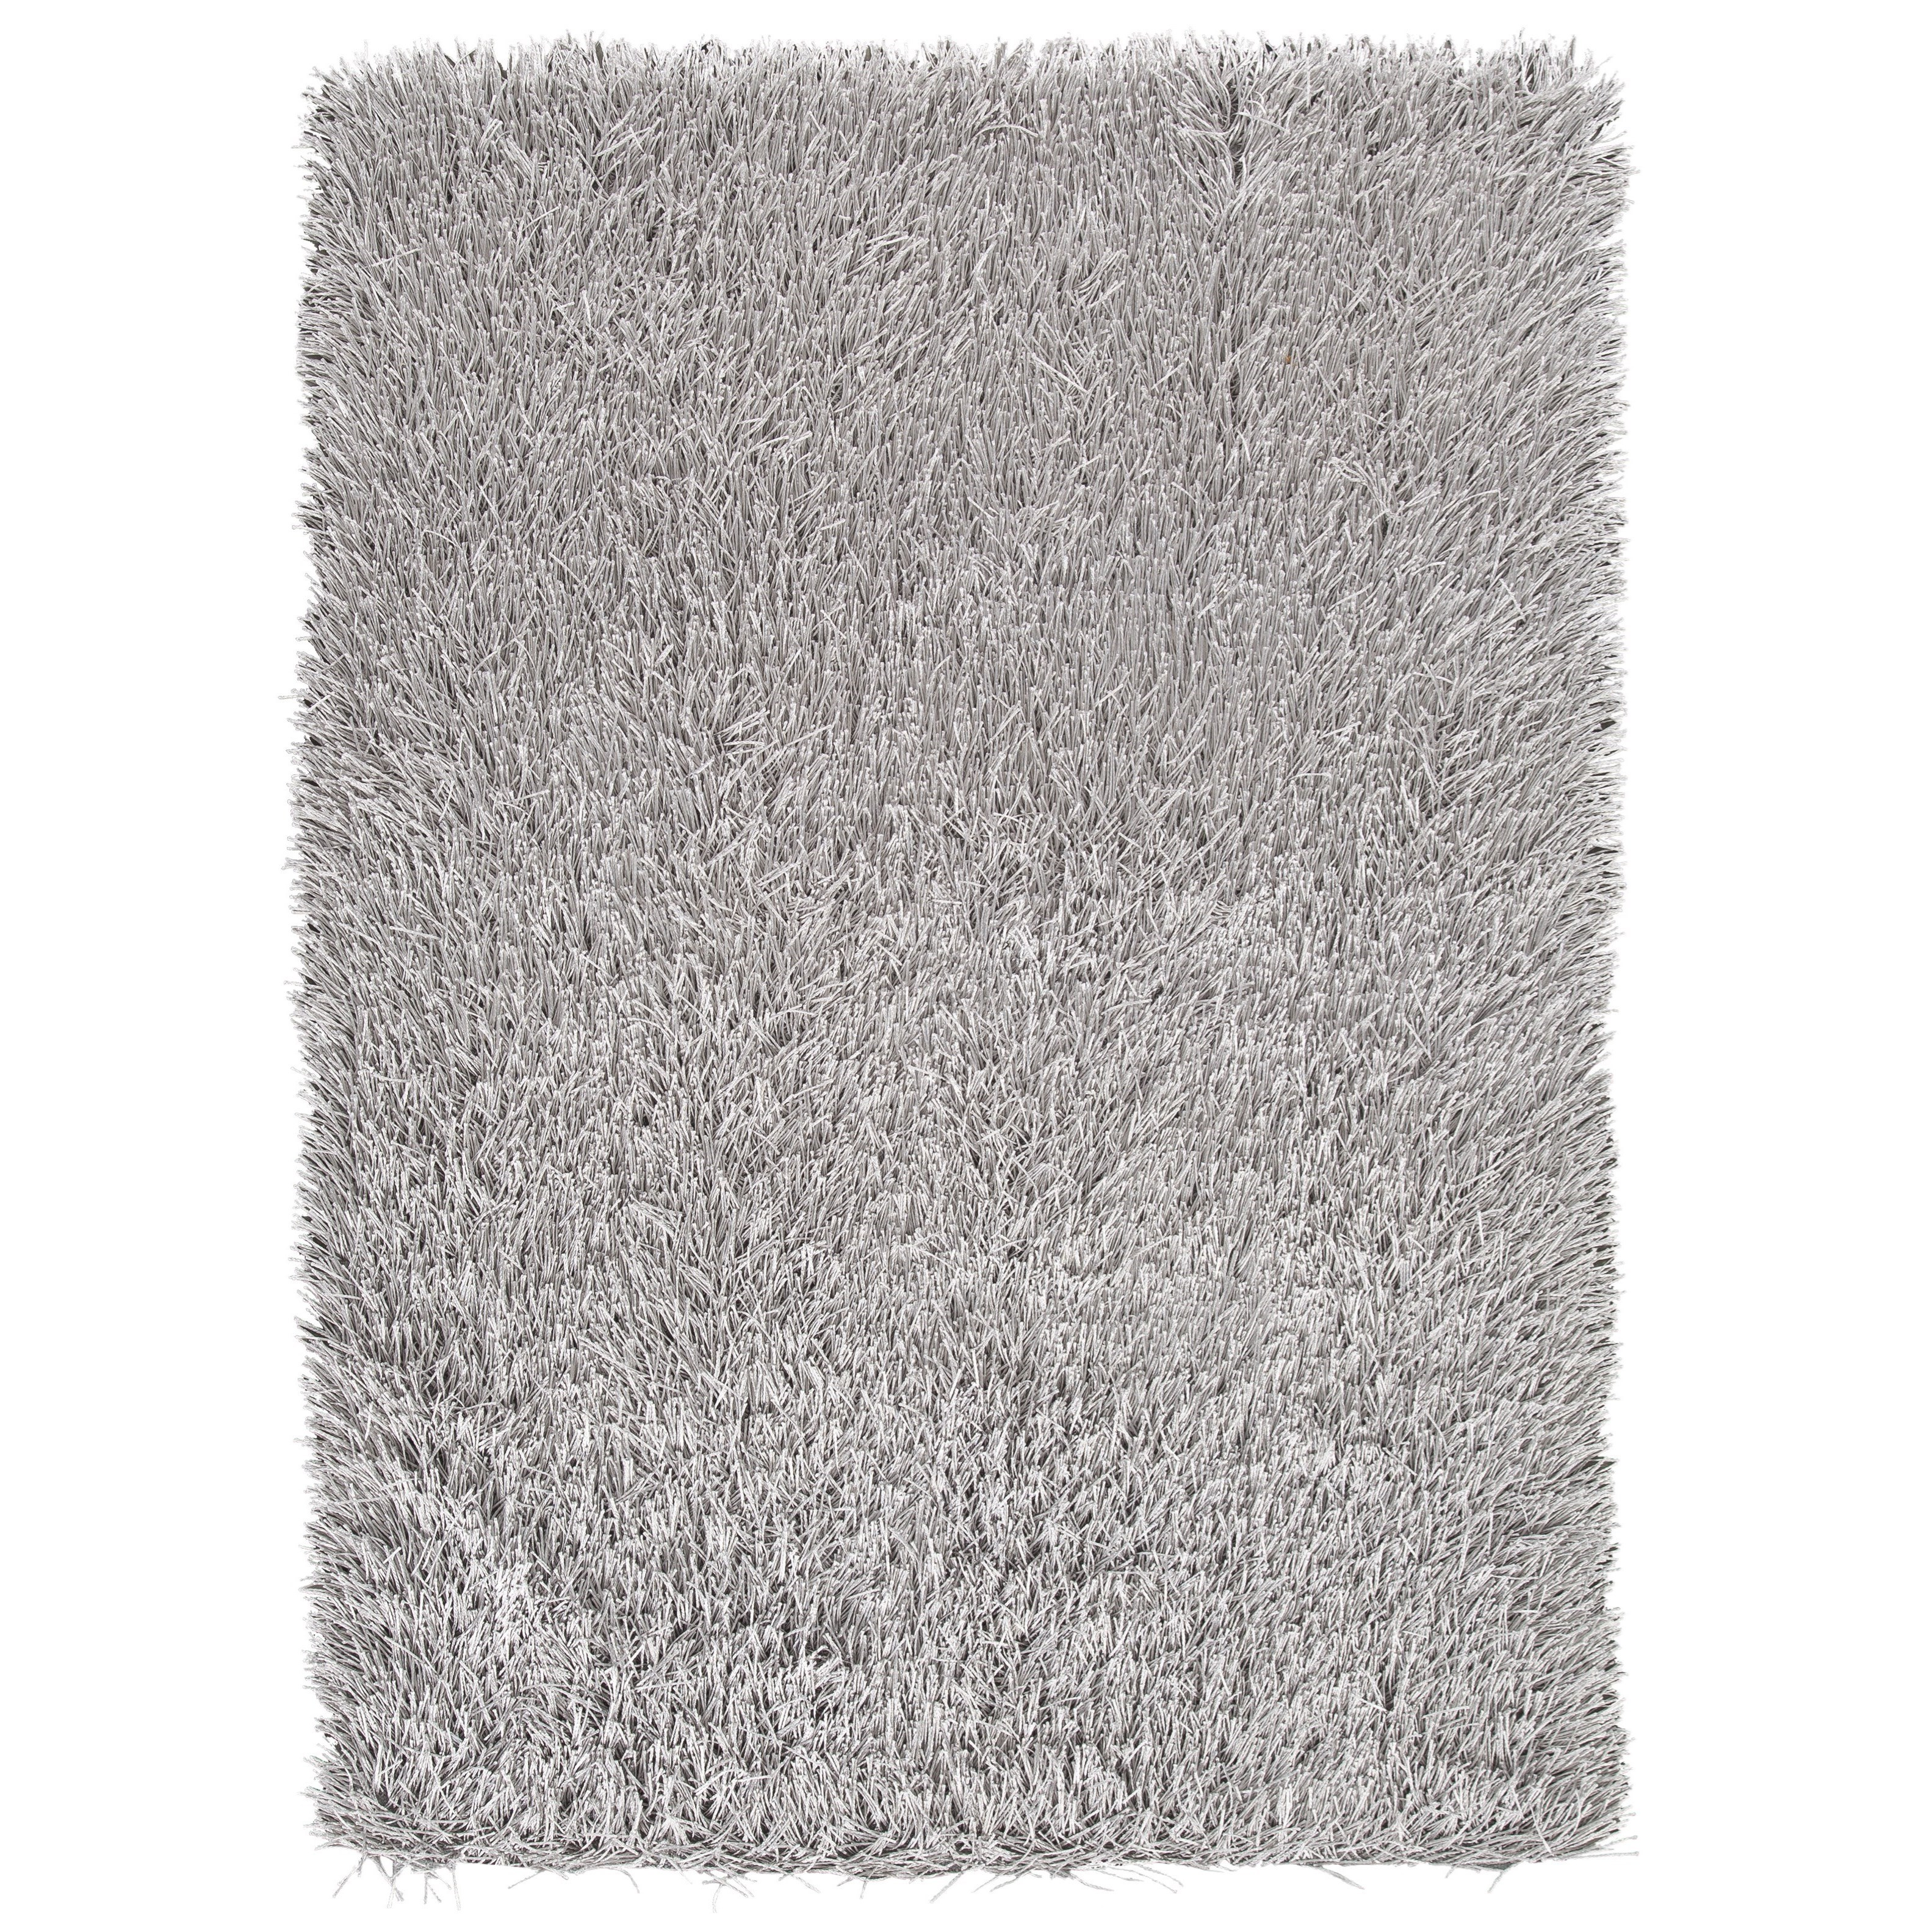 Signature Design by Ashley Contemporary Area Rugs Josue Gray Large Rug - Item Number: R403111